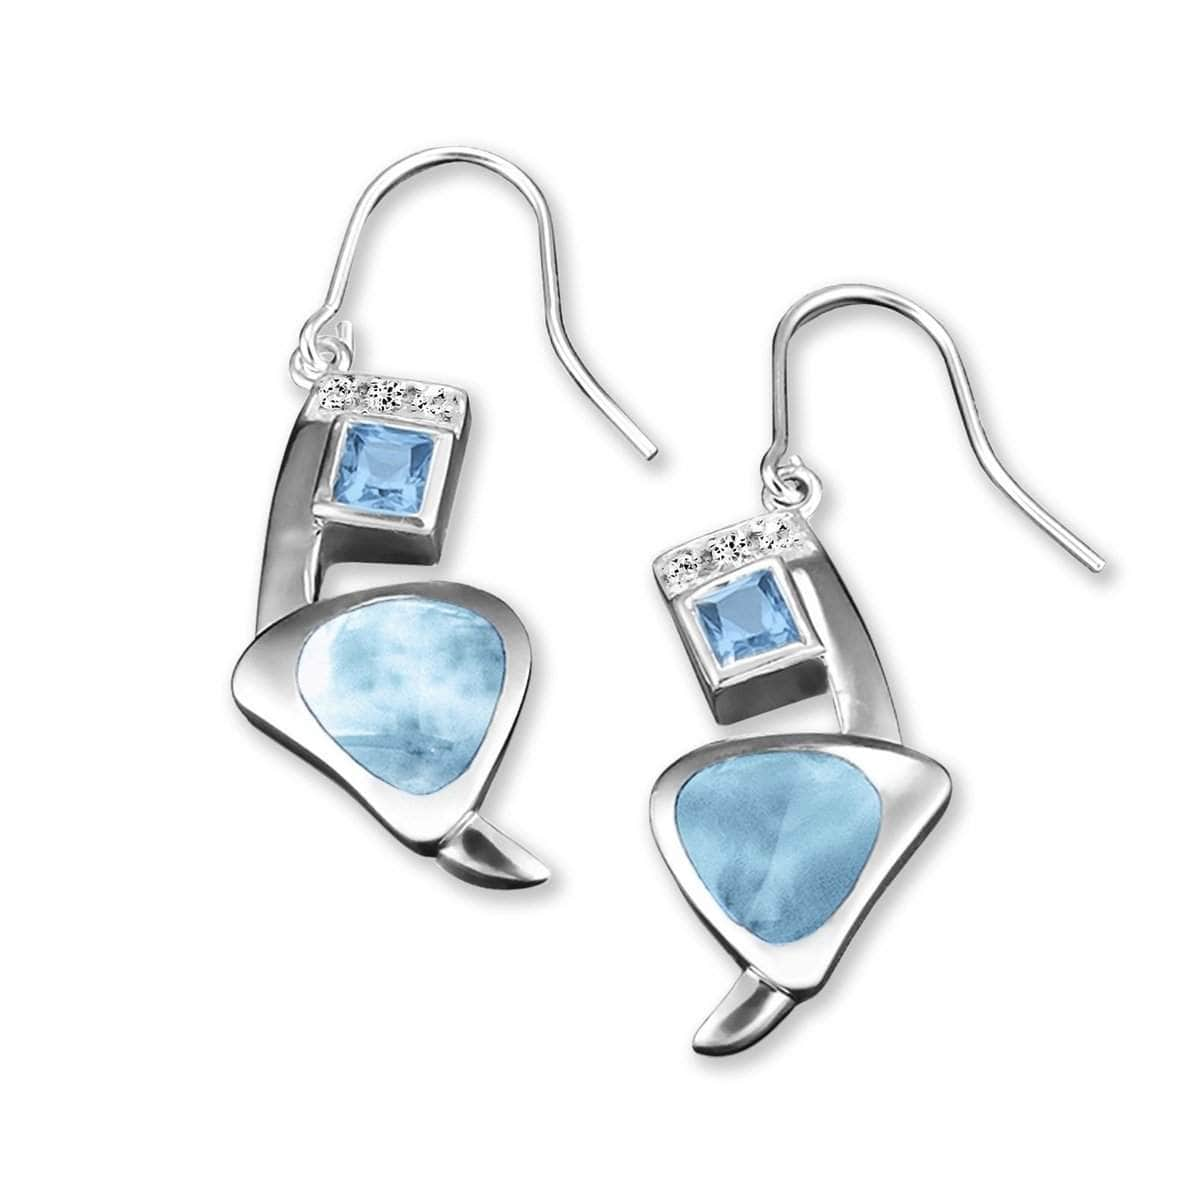 Curva Earrings - Ecurv00-00-Marahlago Larimar-Renee Taylor Gallery